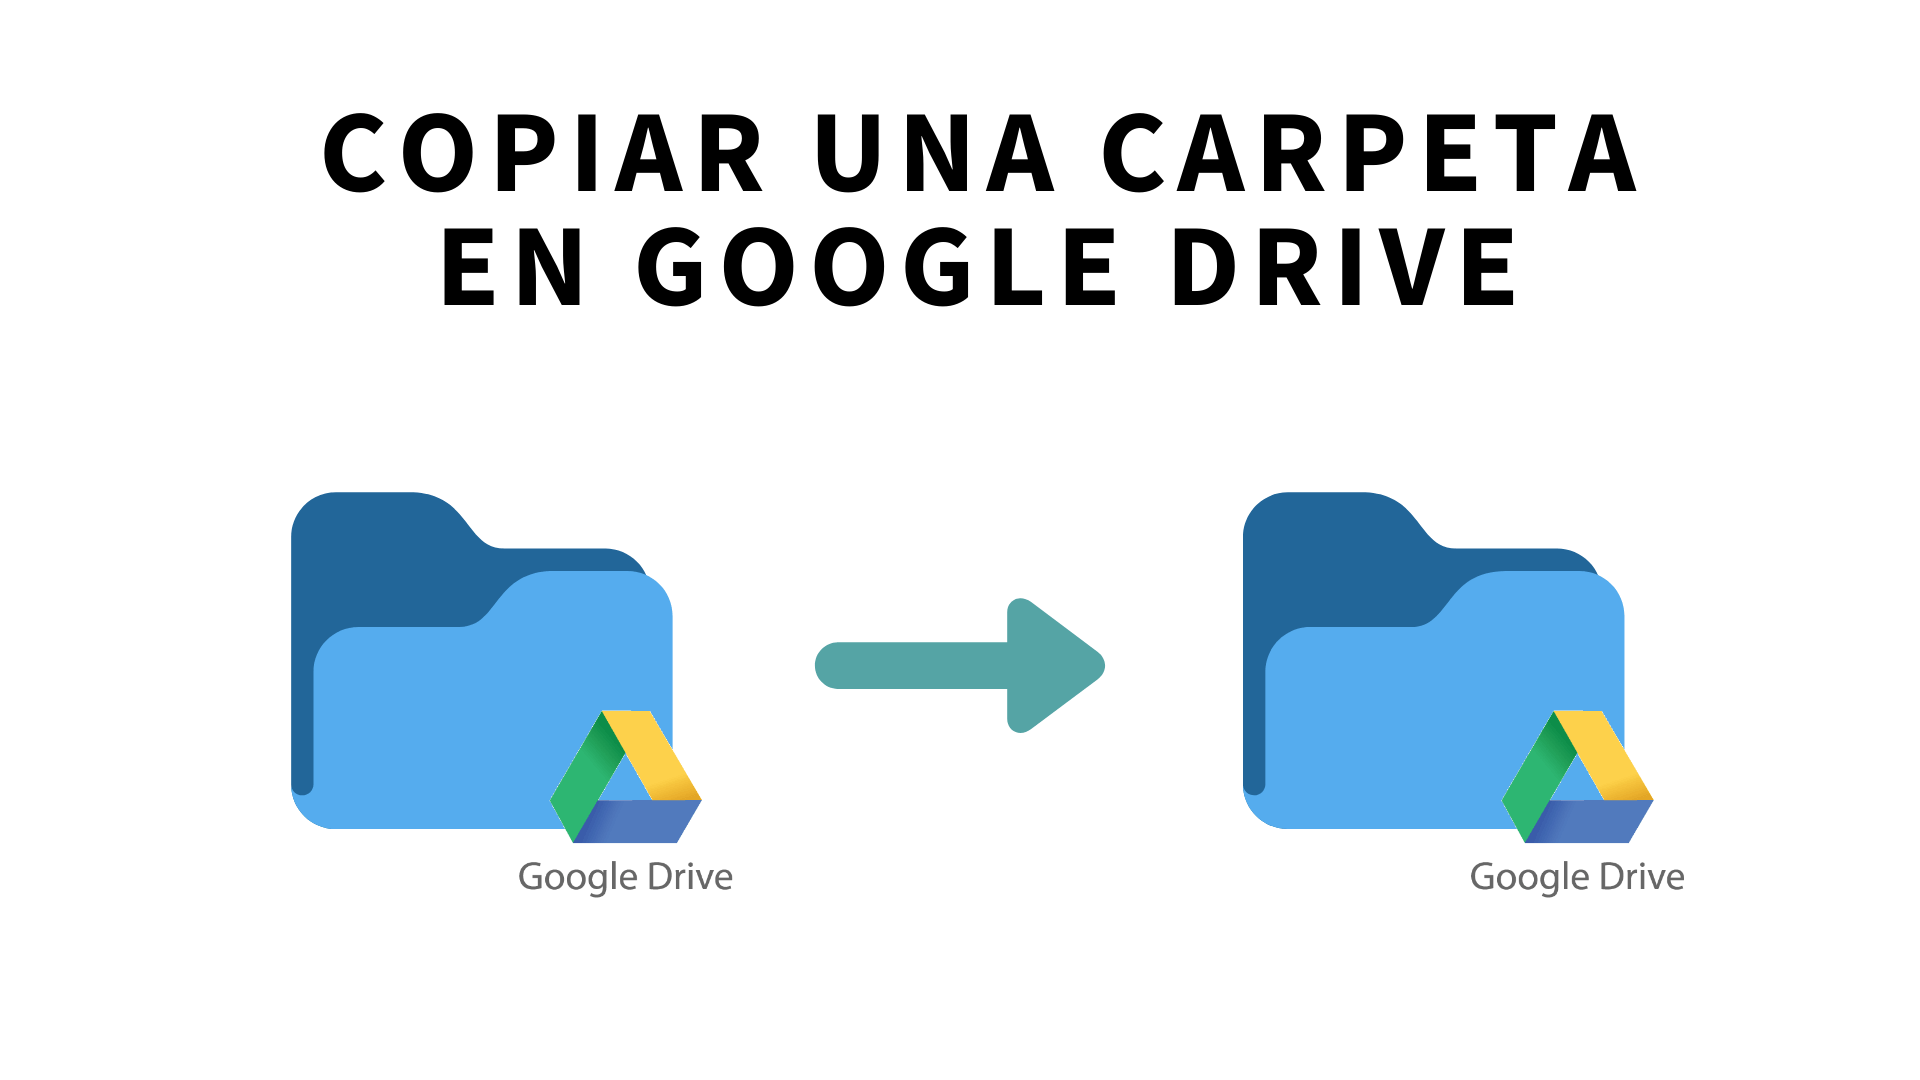 Copiar una carpeta en Google Drive